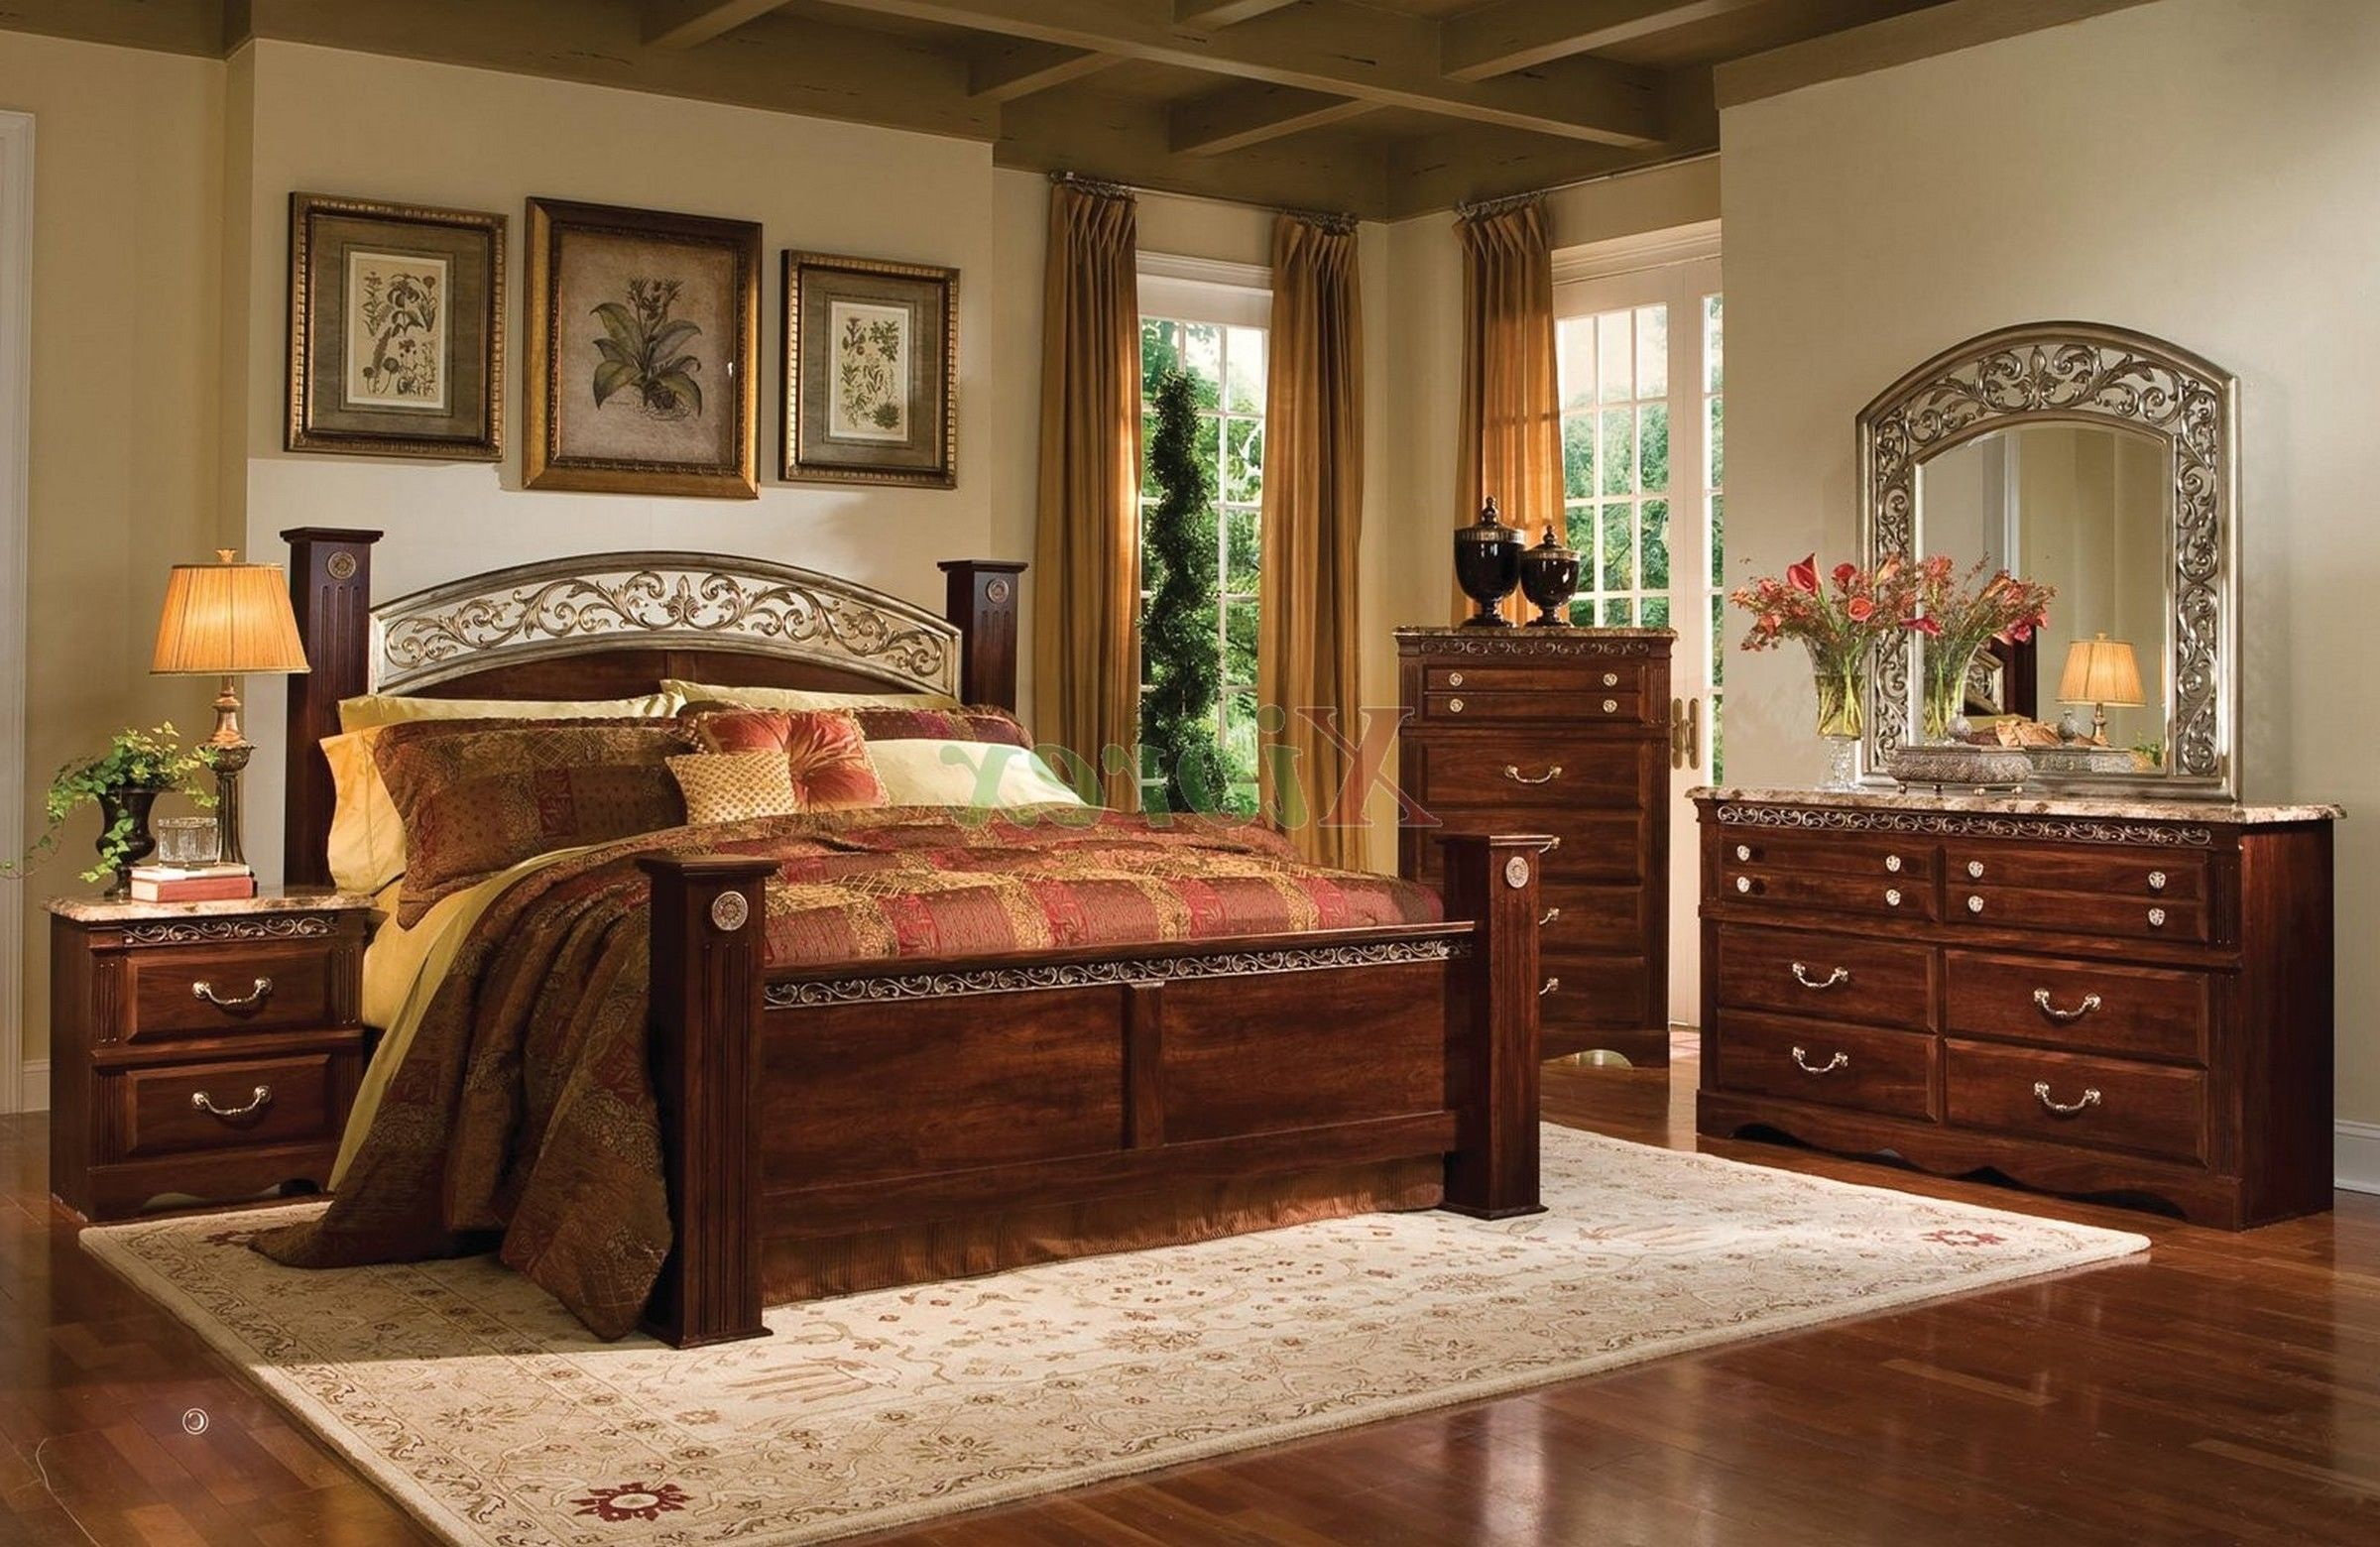 Wood furniture bedroom design picture1 bedroom for Bedroom ideas oak furniture